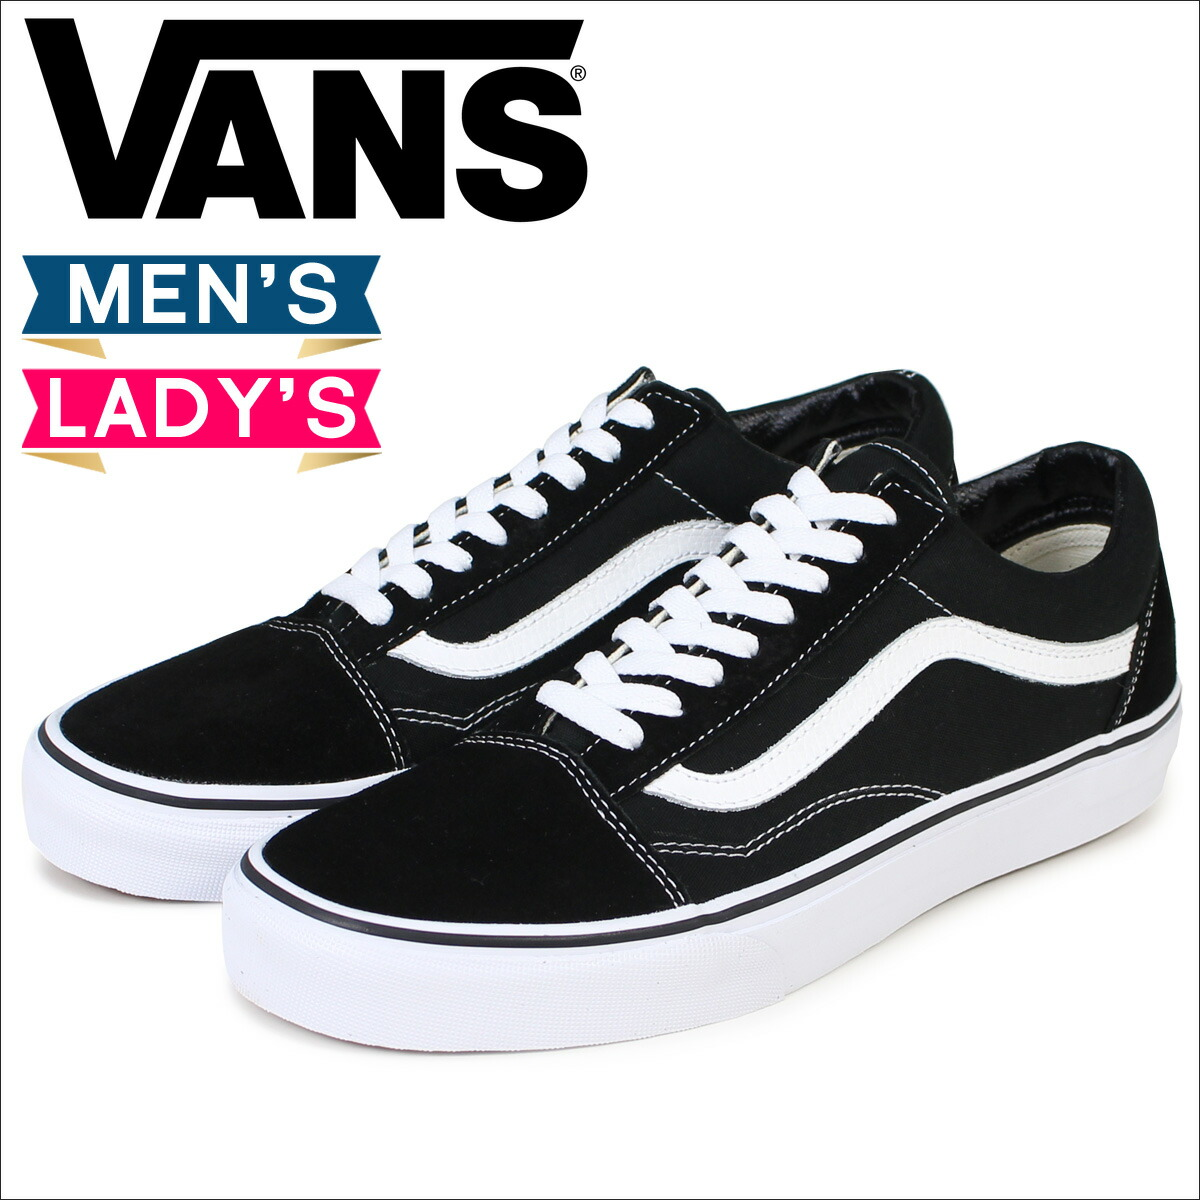 ALLSPORTS  VANS old school sneaker mens vans vans OLD SKOOL shoes ... d8c94724731e